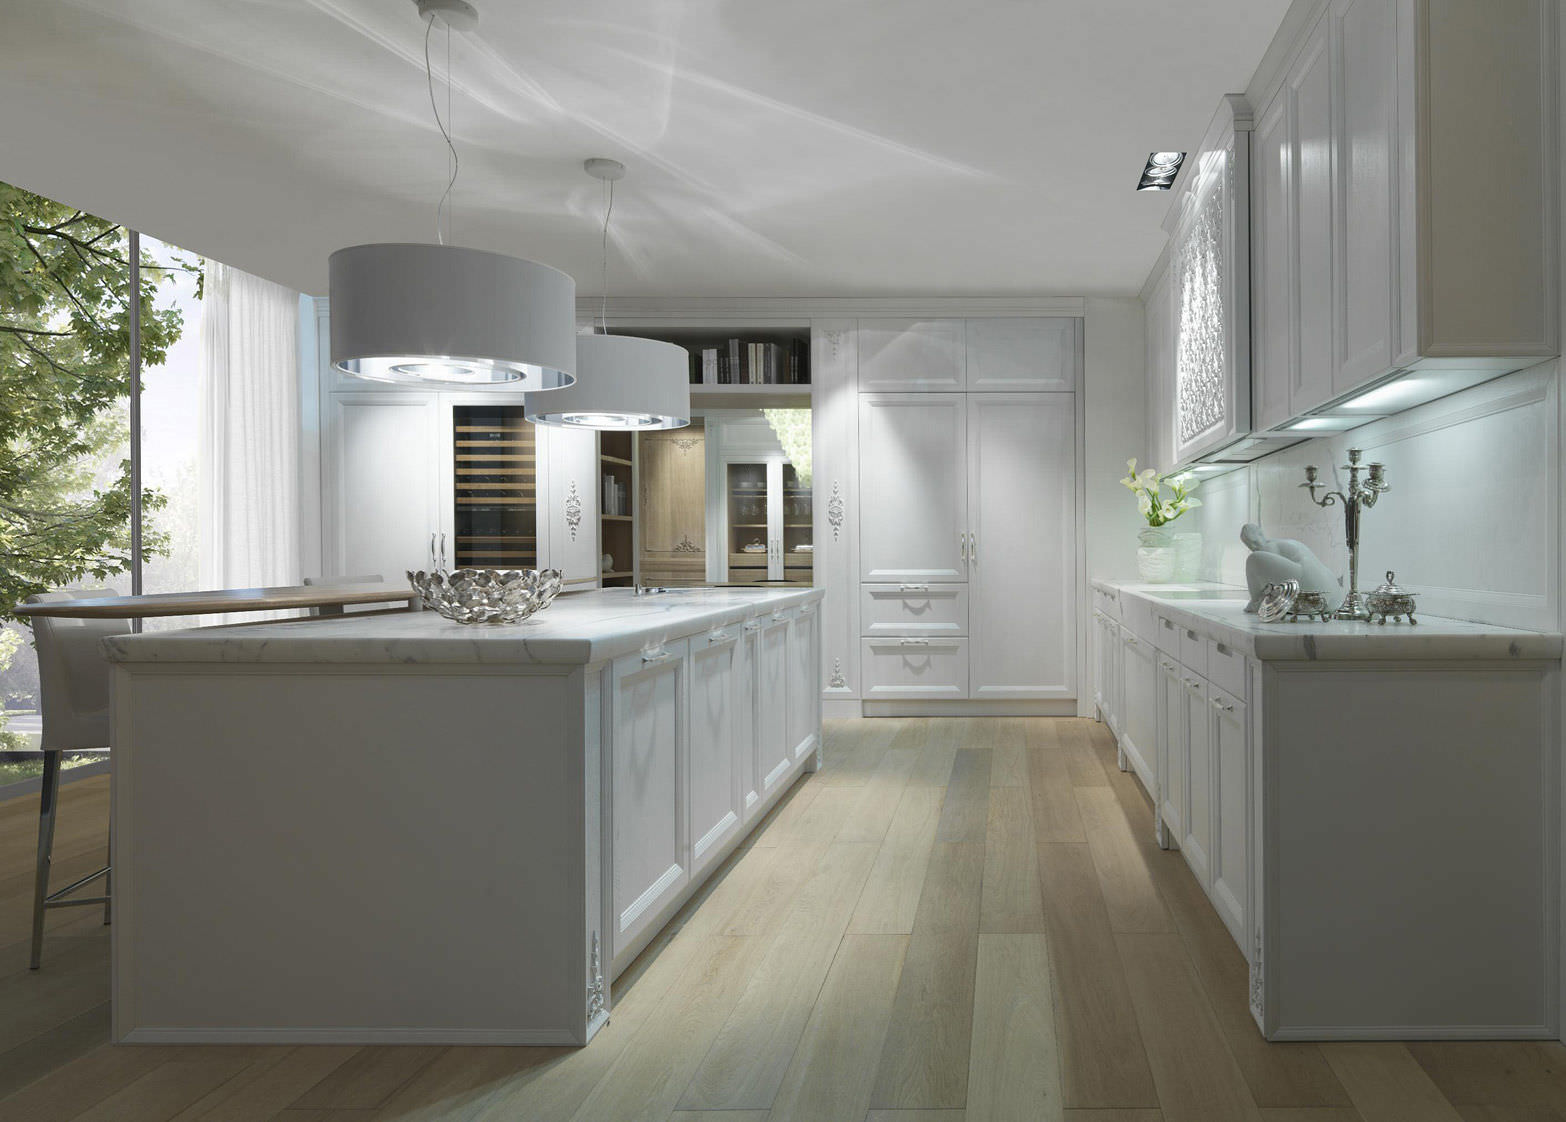 Contemporary Kitchen Marble Wood Veneer With Handles Princess Cashmere